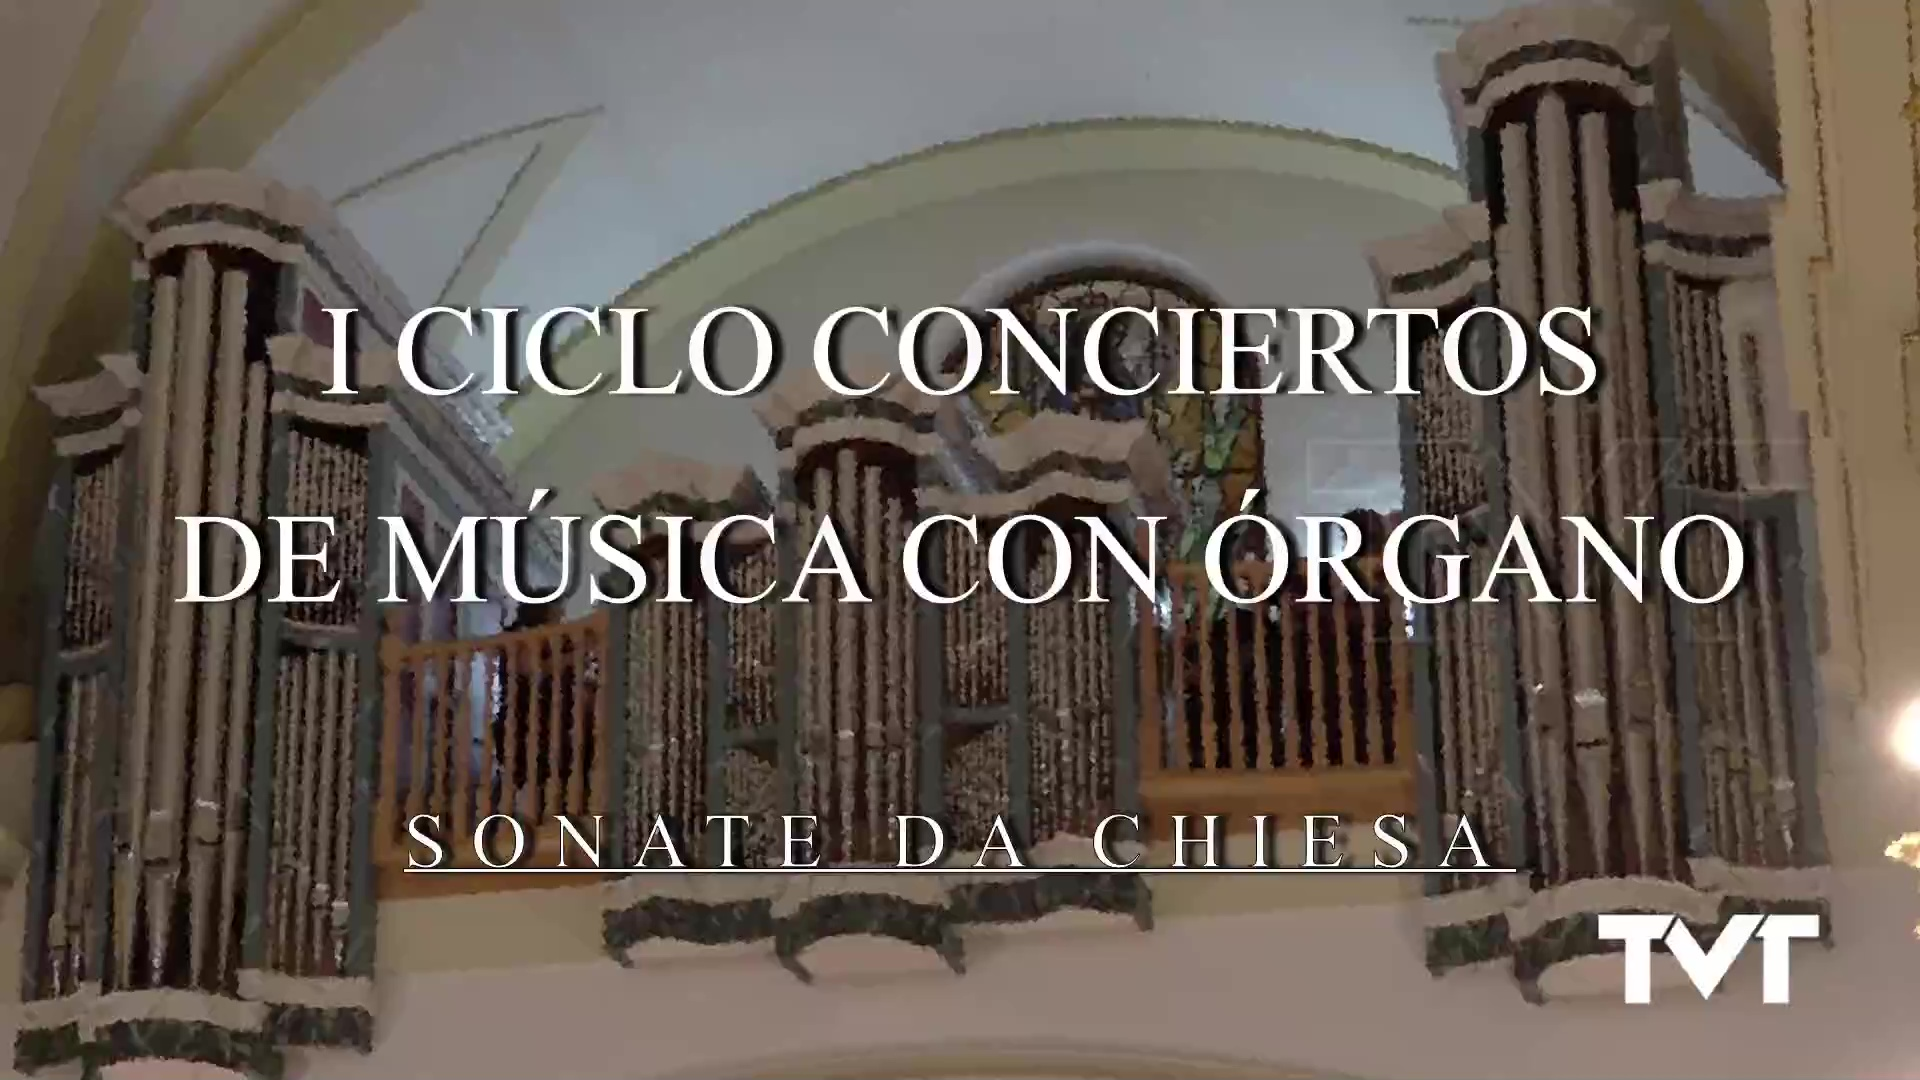 Concierto con Órgano Sonate da Chiesa